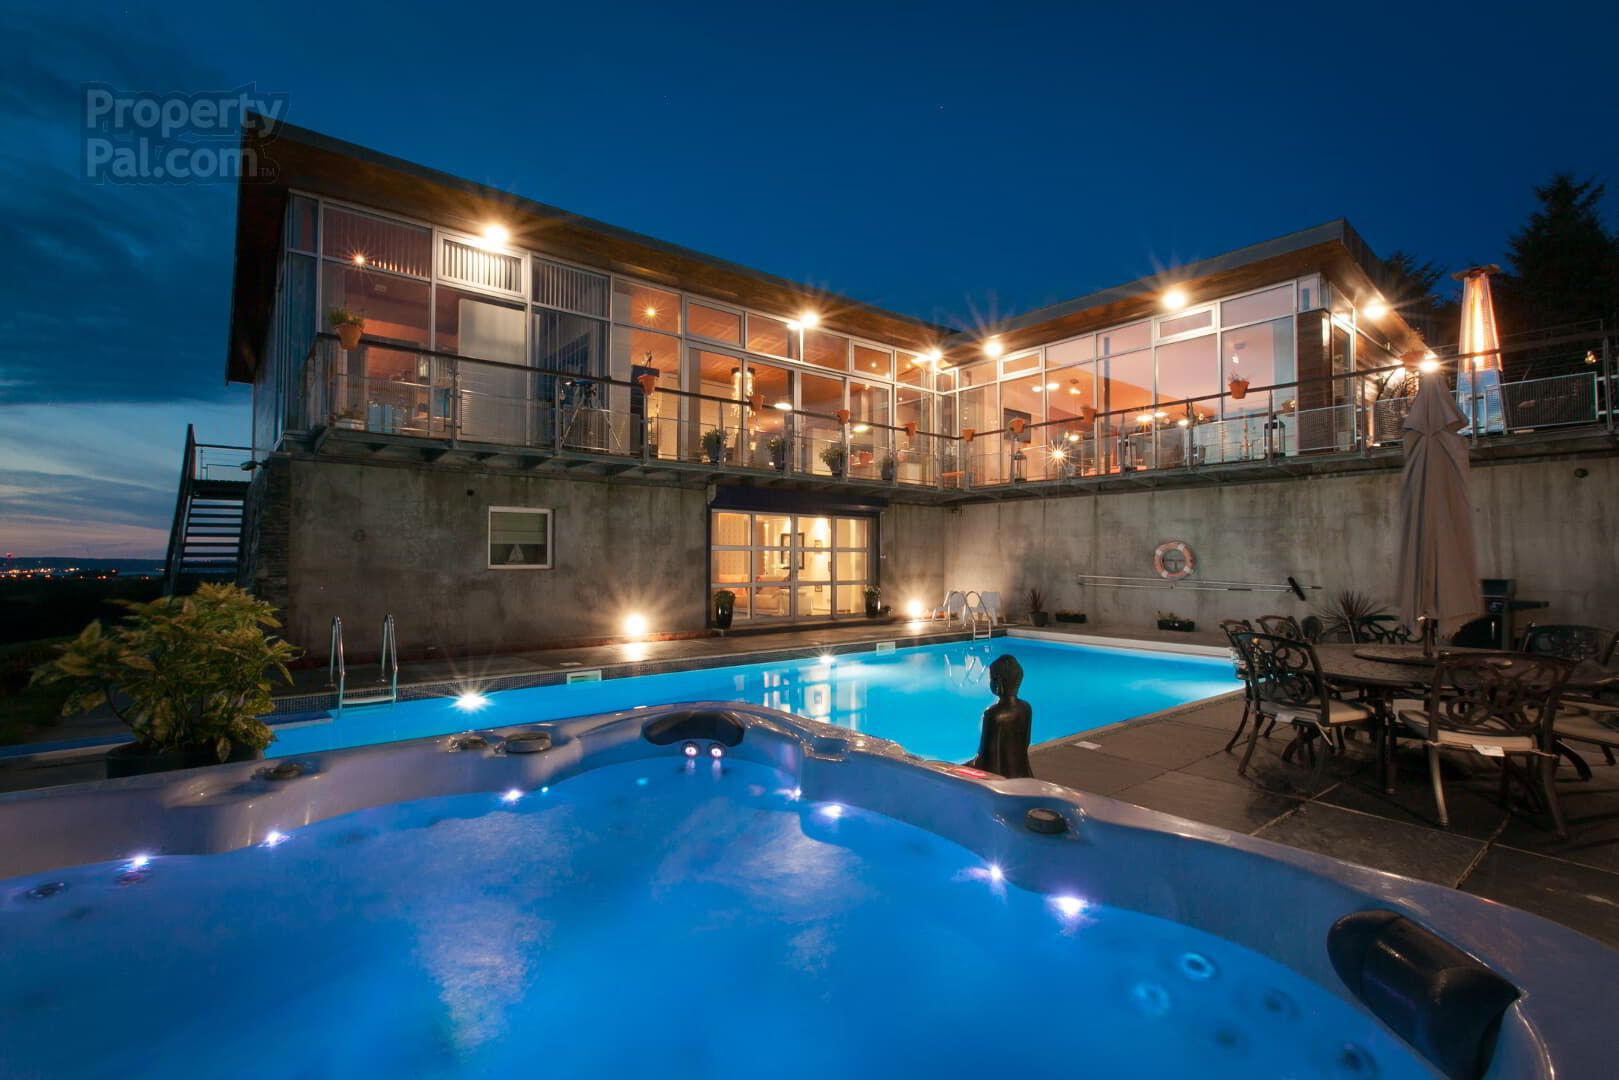 Home With Pool At Night Time Pool Houses Ireland Homes Pool At Night